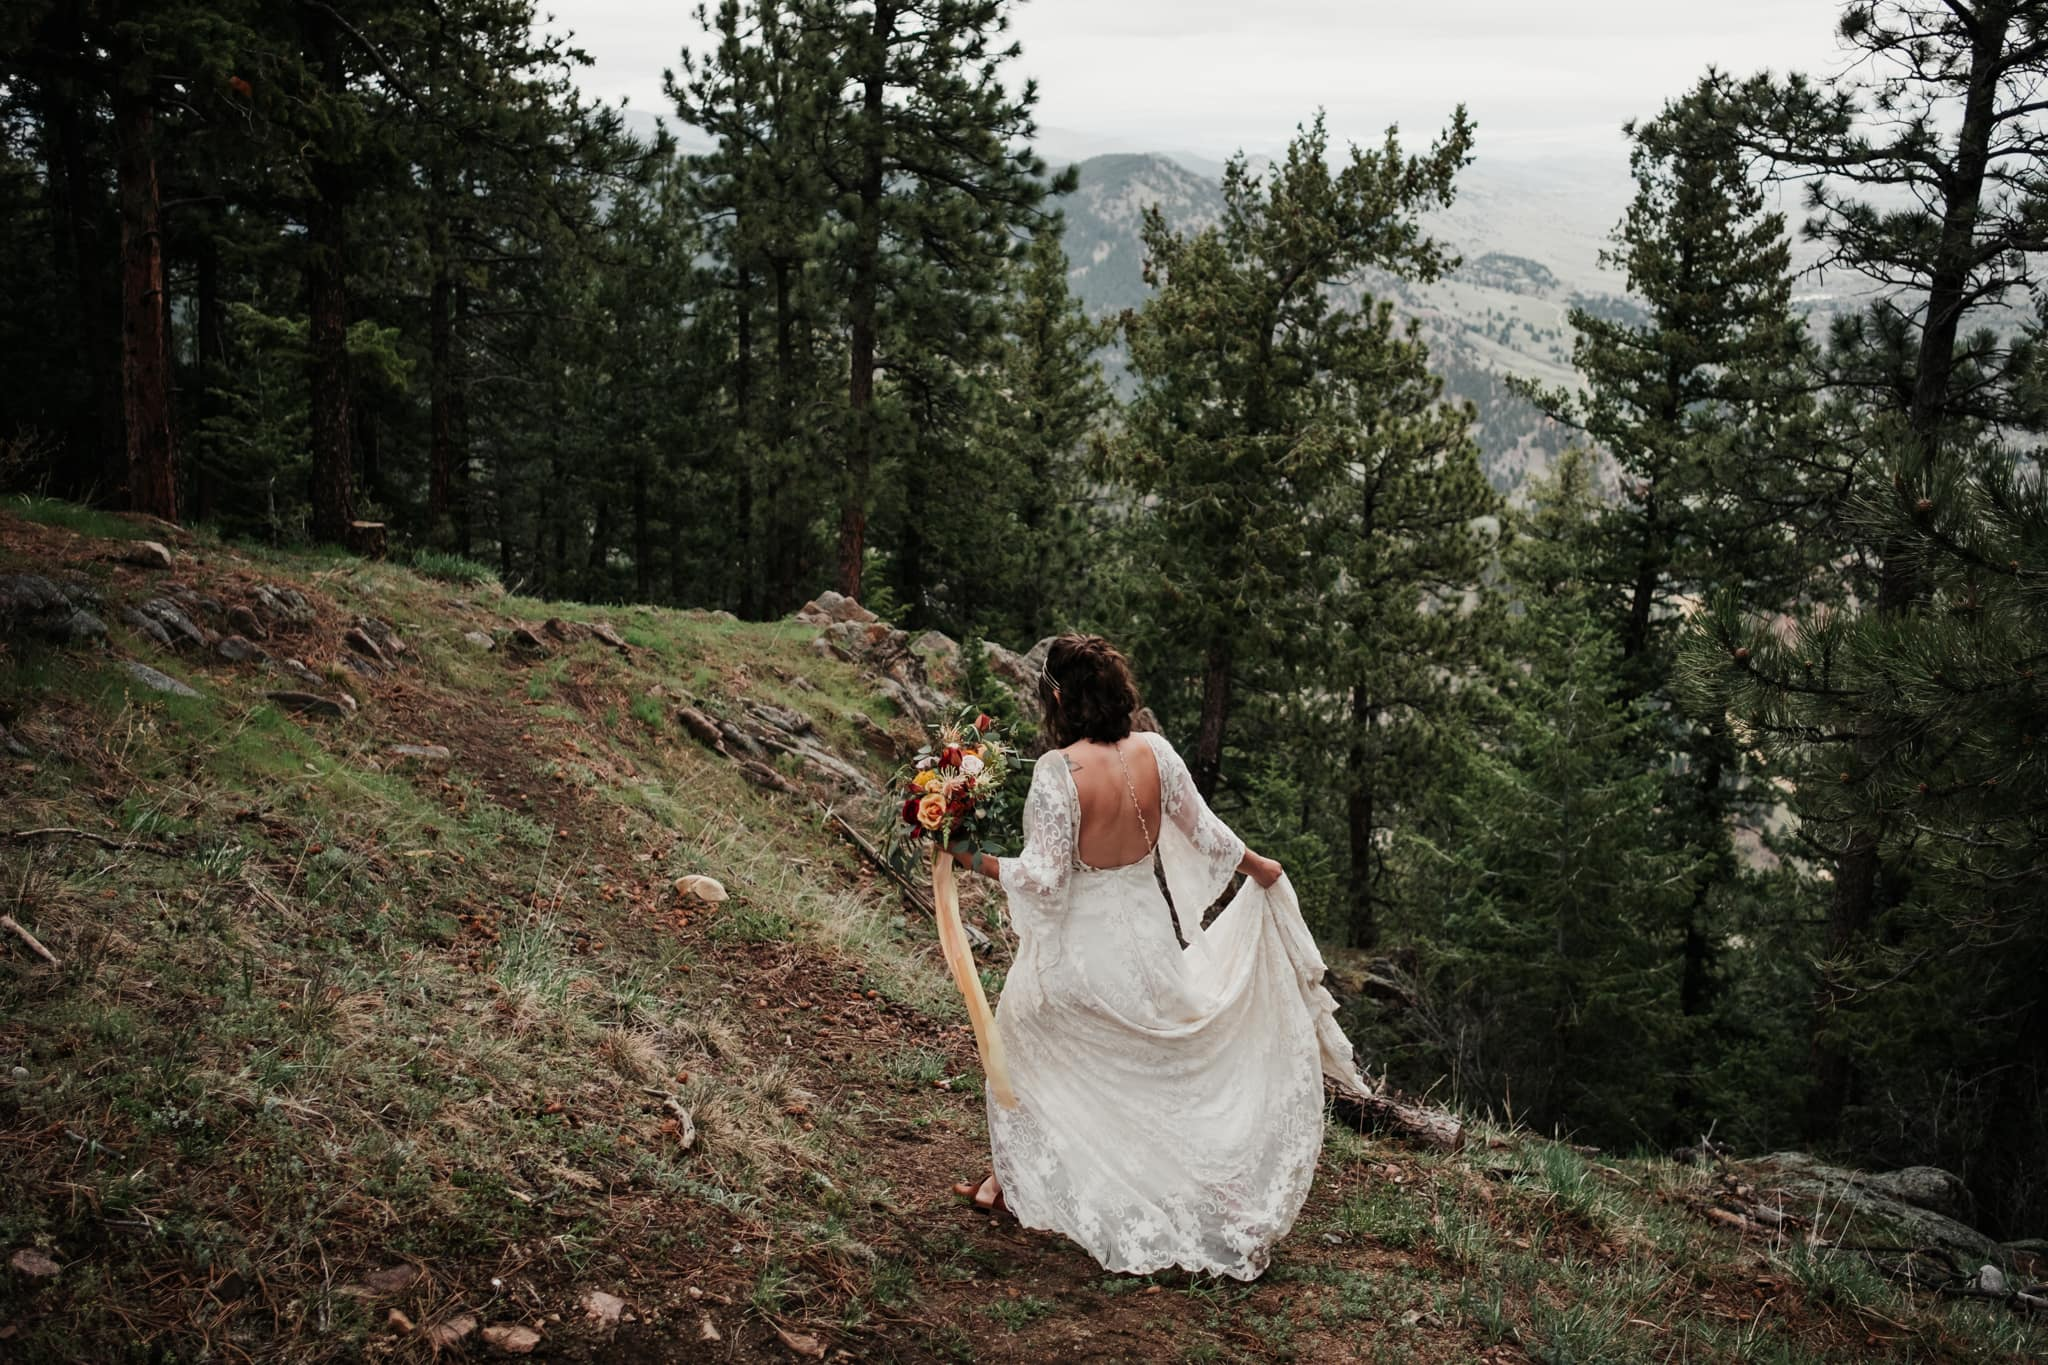 Bride hiking through forest in Rue de Seine bridal gown, Colorado elopement photographer